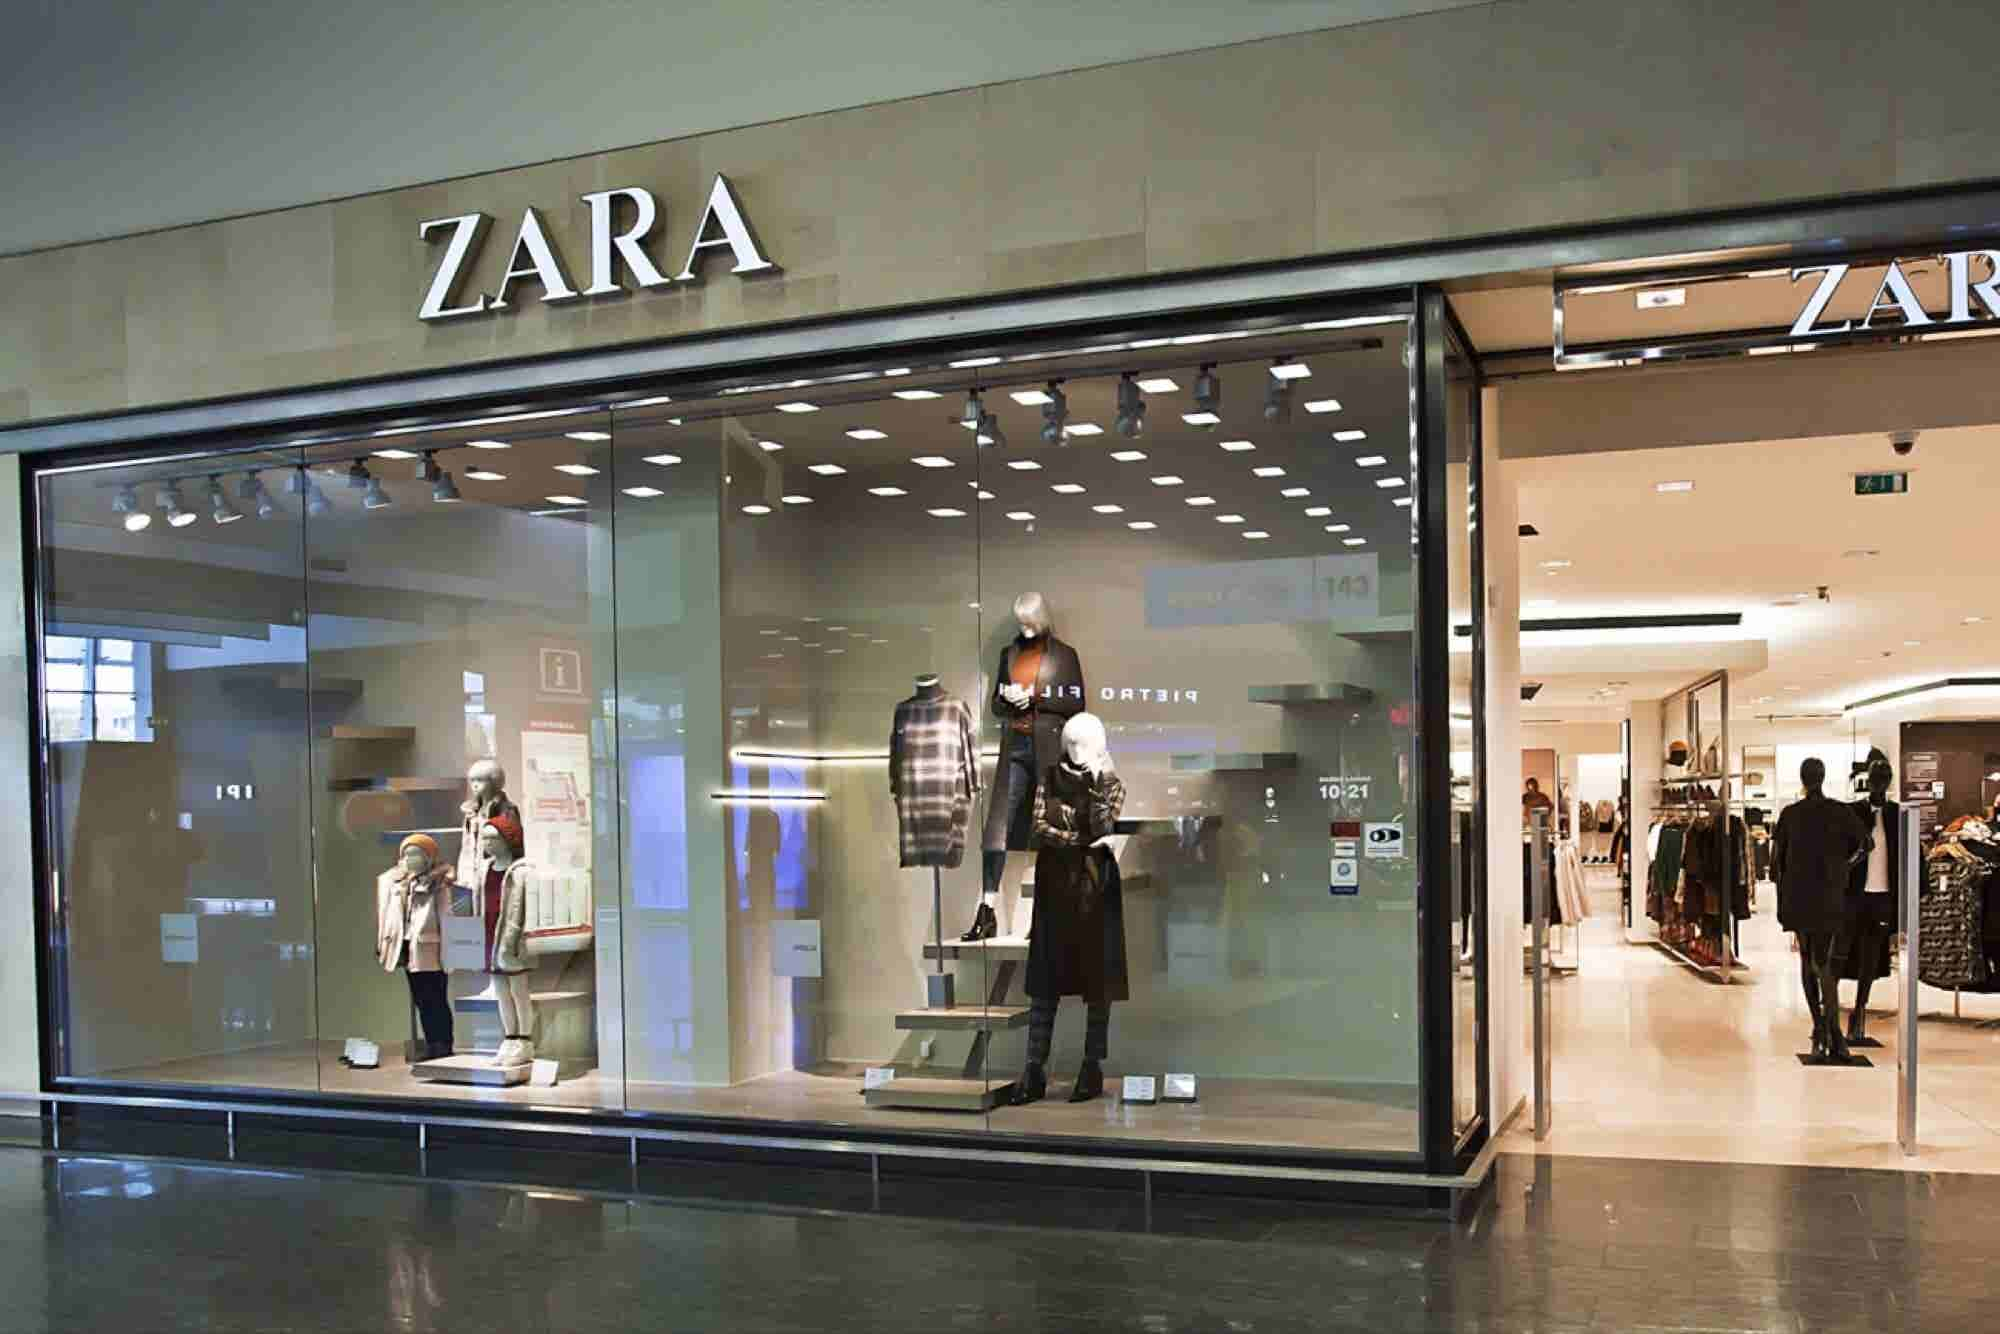 Why Zara Is Going to Install iPads in Its Fitting Rooms